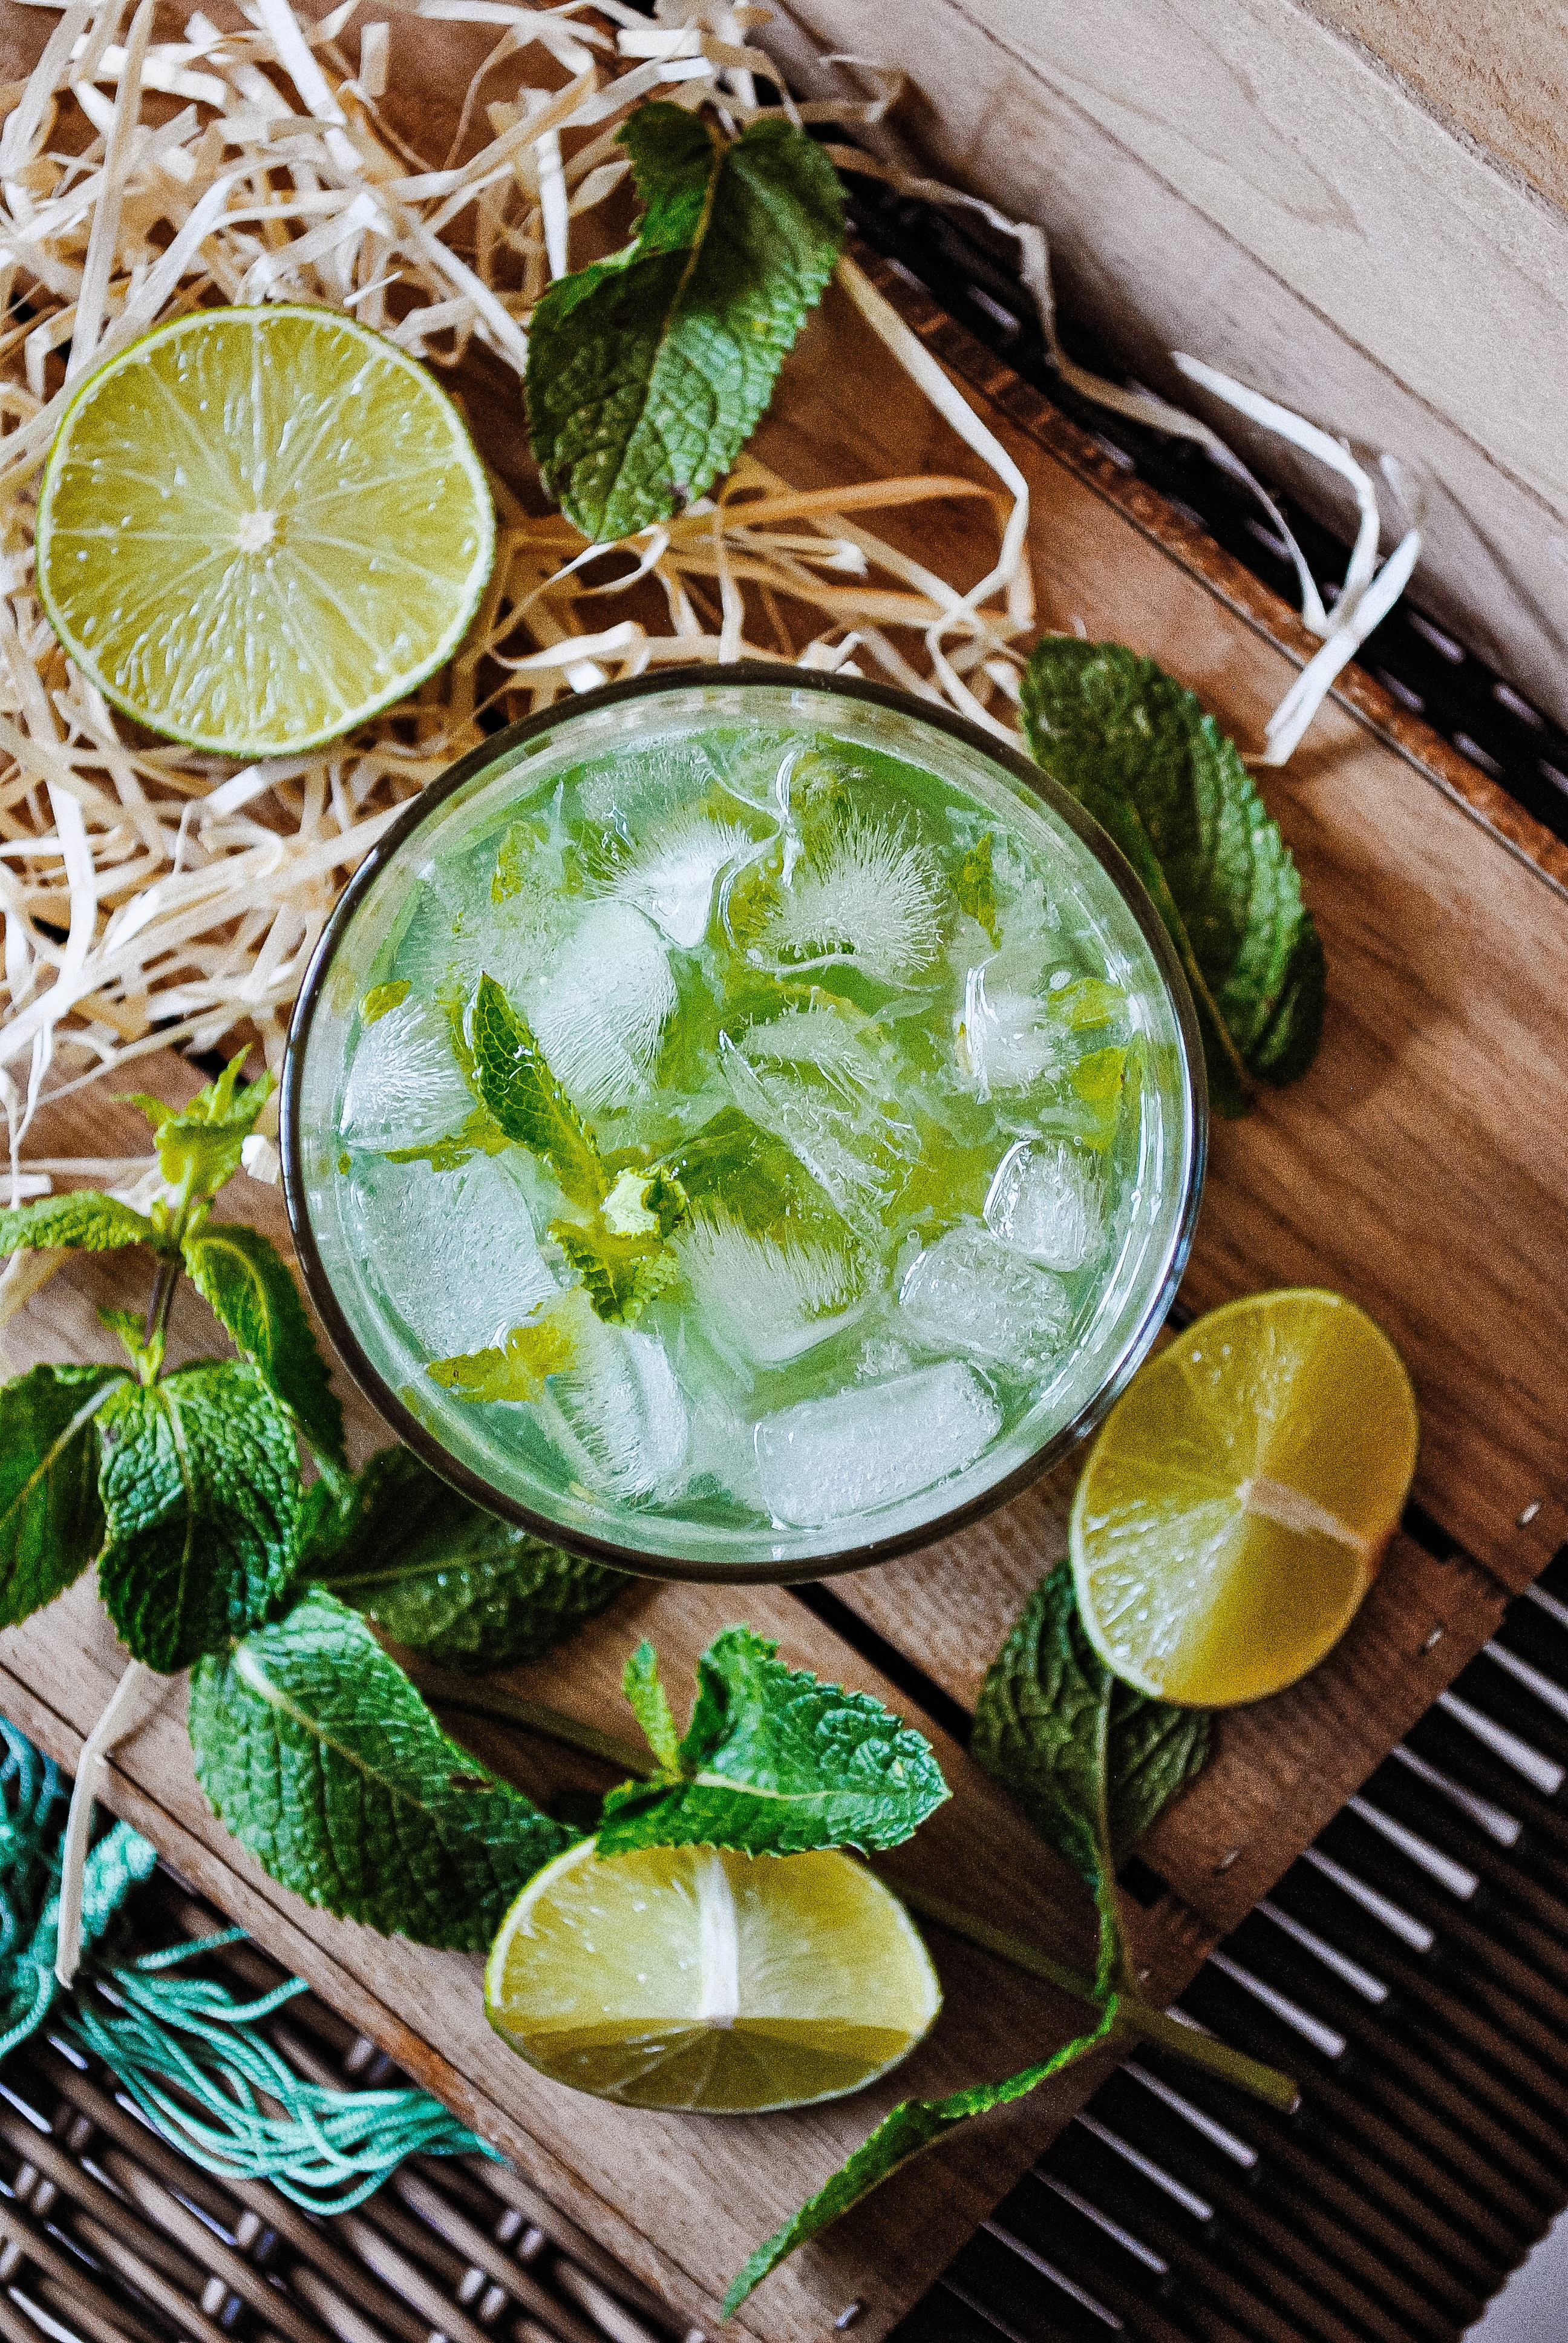 Herb ice cubes antiinflammatory nutrition Evie Whitehead